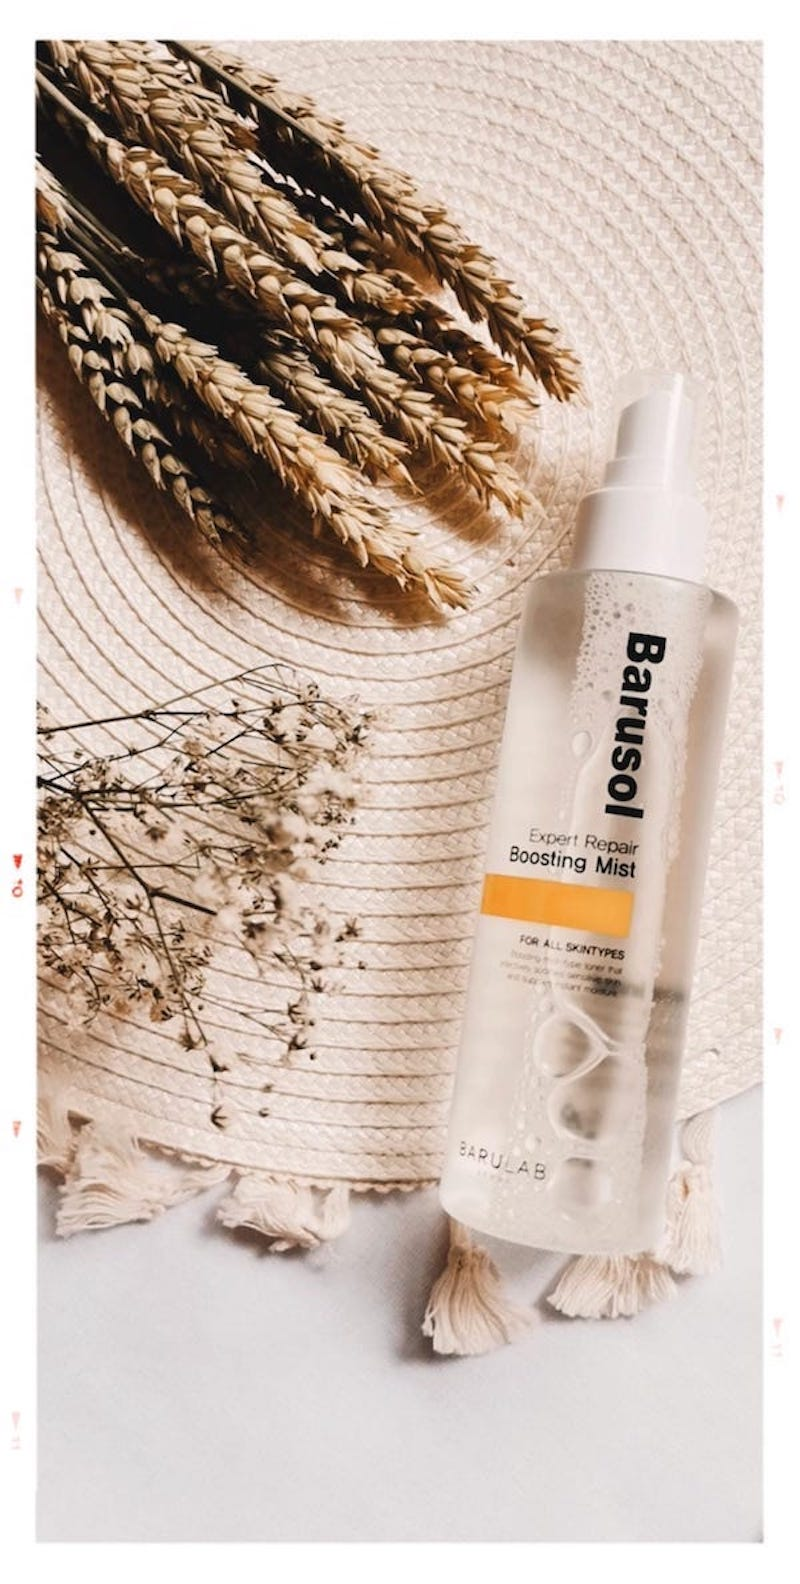 Review | Barulab Barusol Expert Repair Boosting Mist